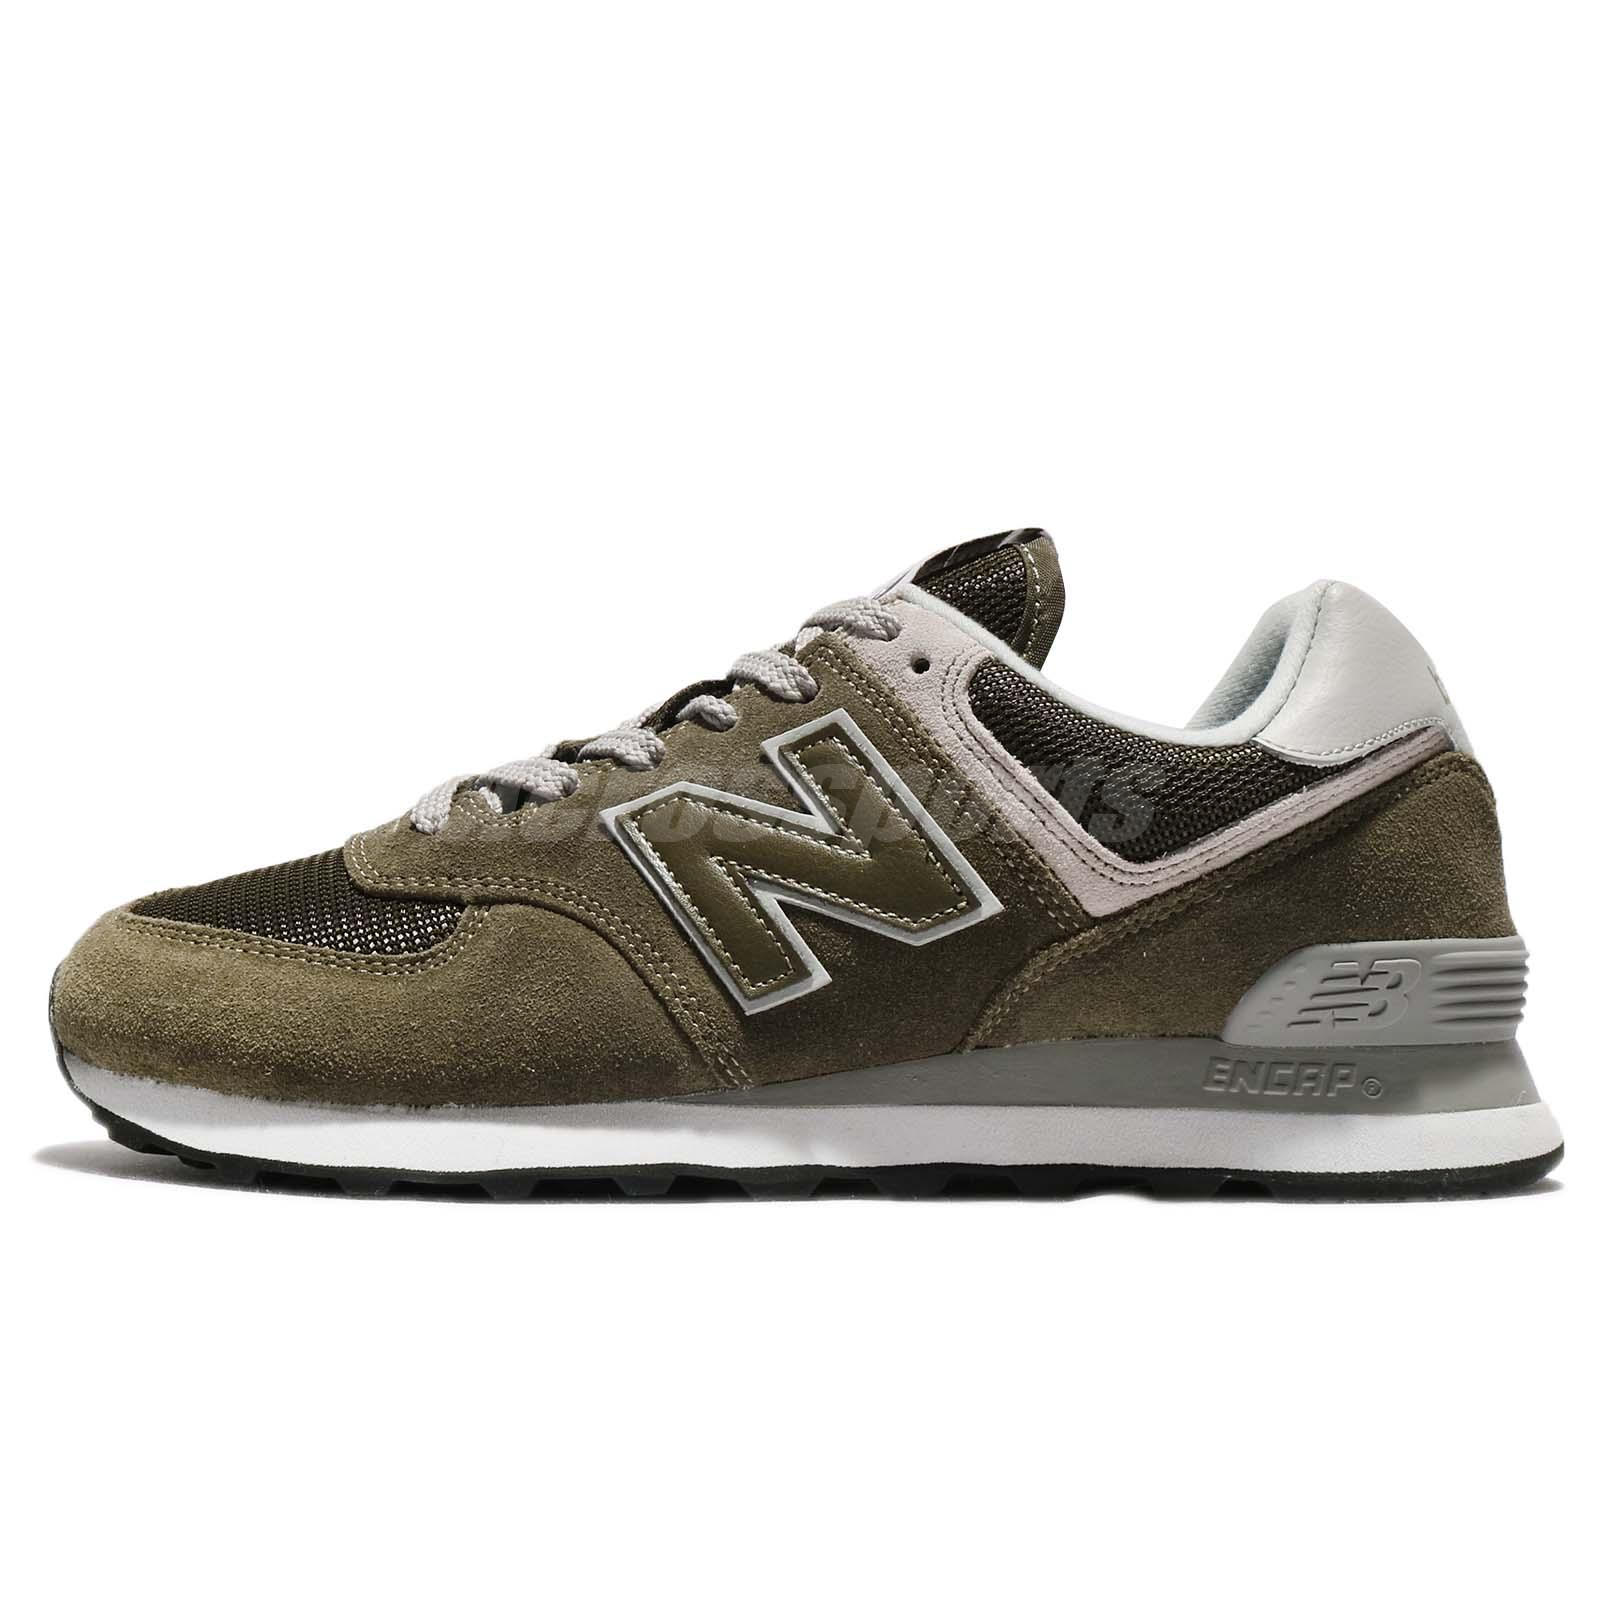 new concept aefad a4558 Details about New Balance ML574EGO D 574 Olive Grey Men Running Shoes  Sneakers ML574EGOD